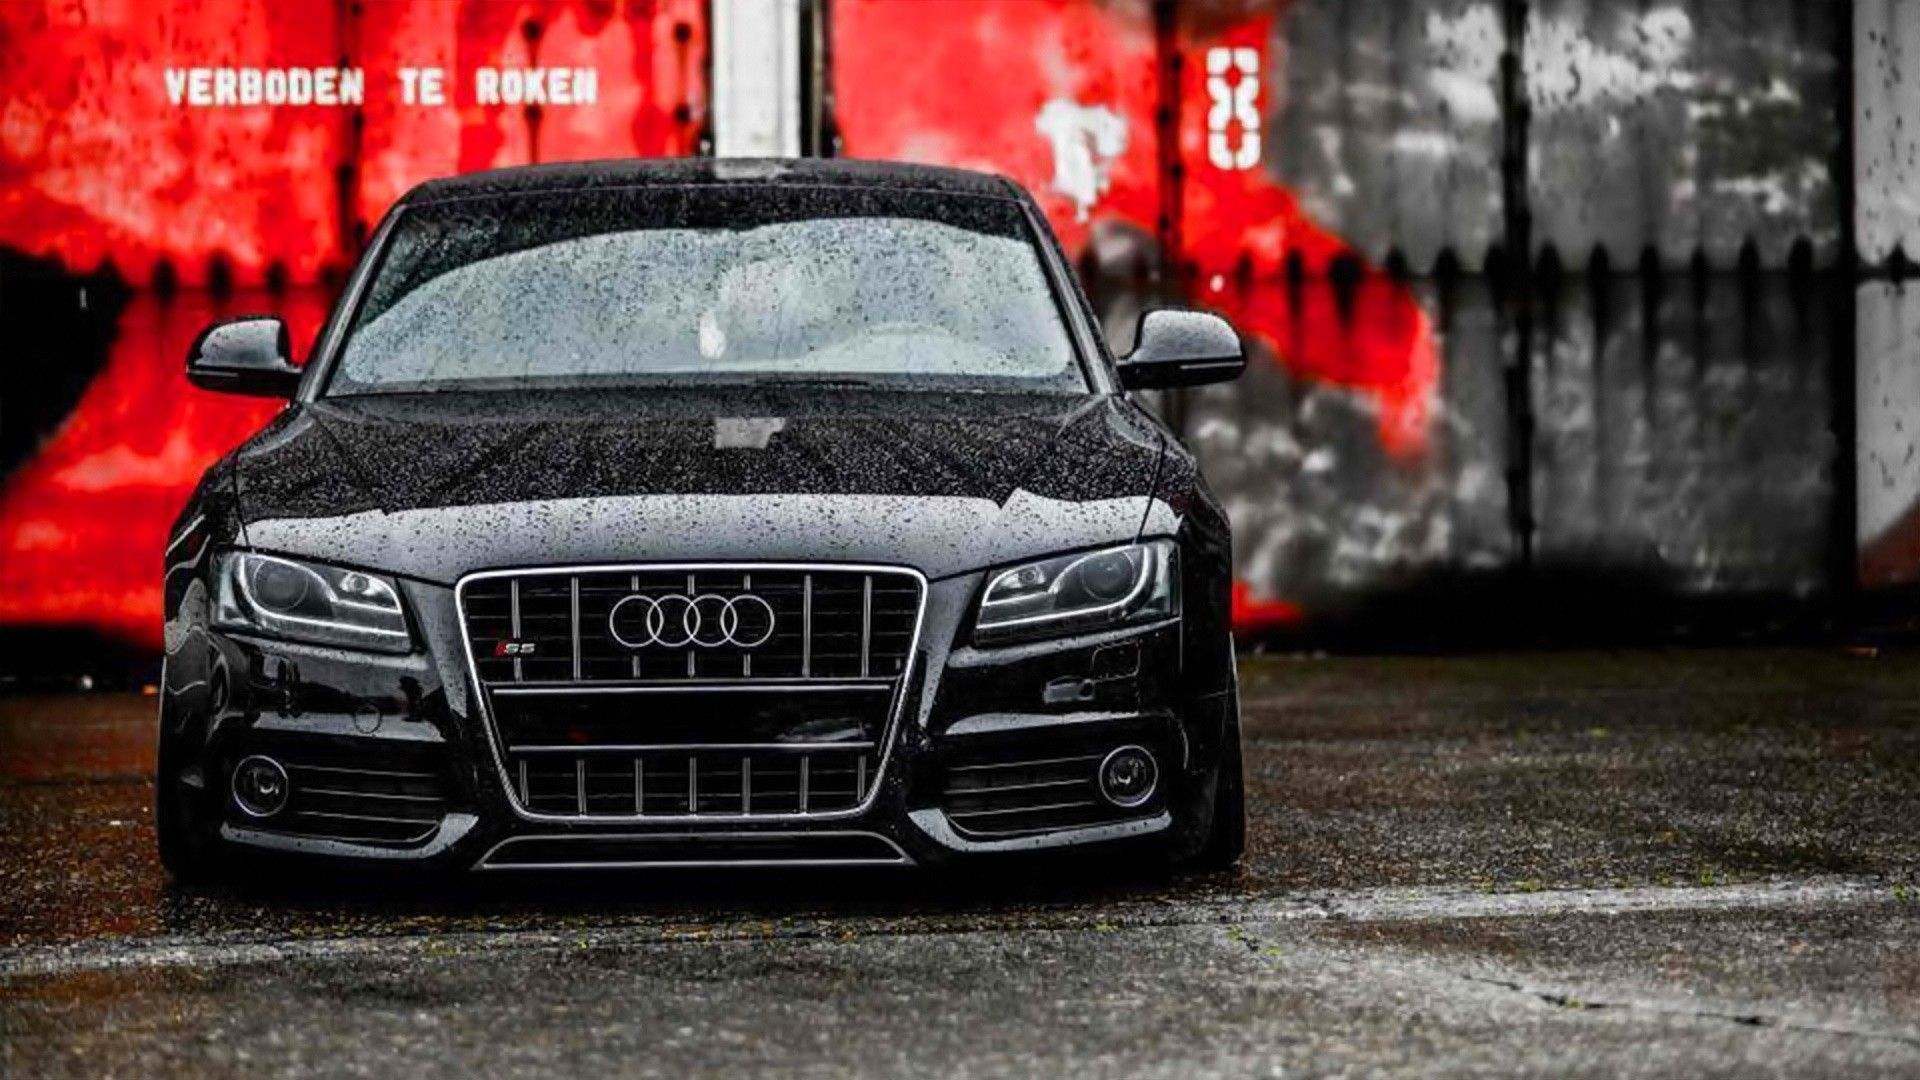 Audi S4 Wallpapers Top Free Audi S4 Backgrounds Wallpaperaccess